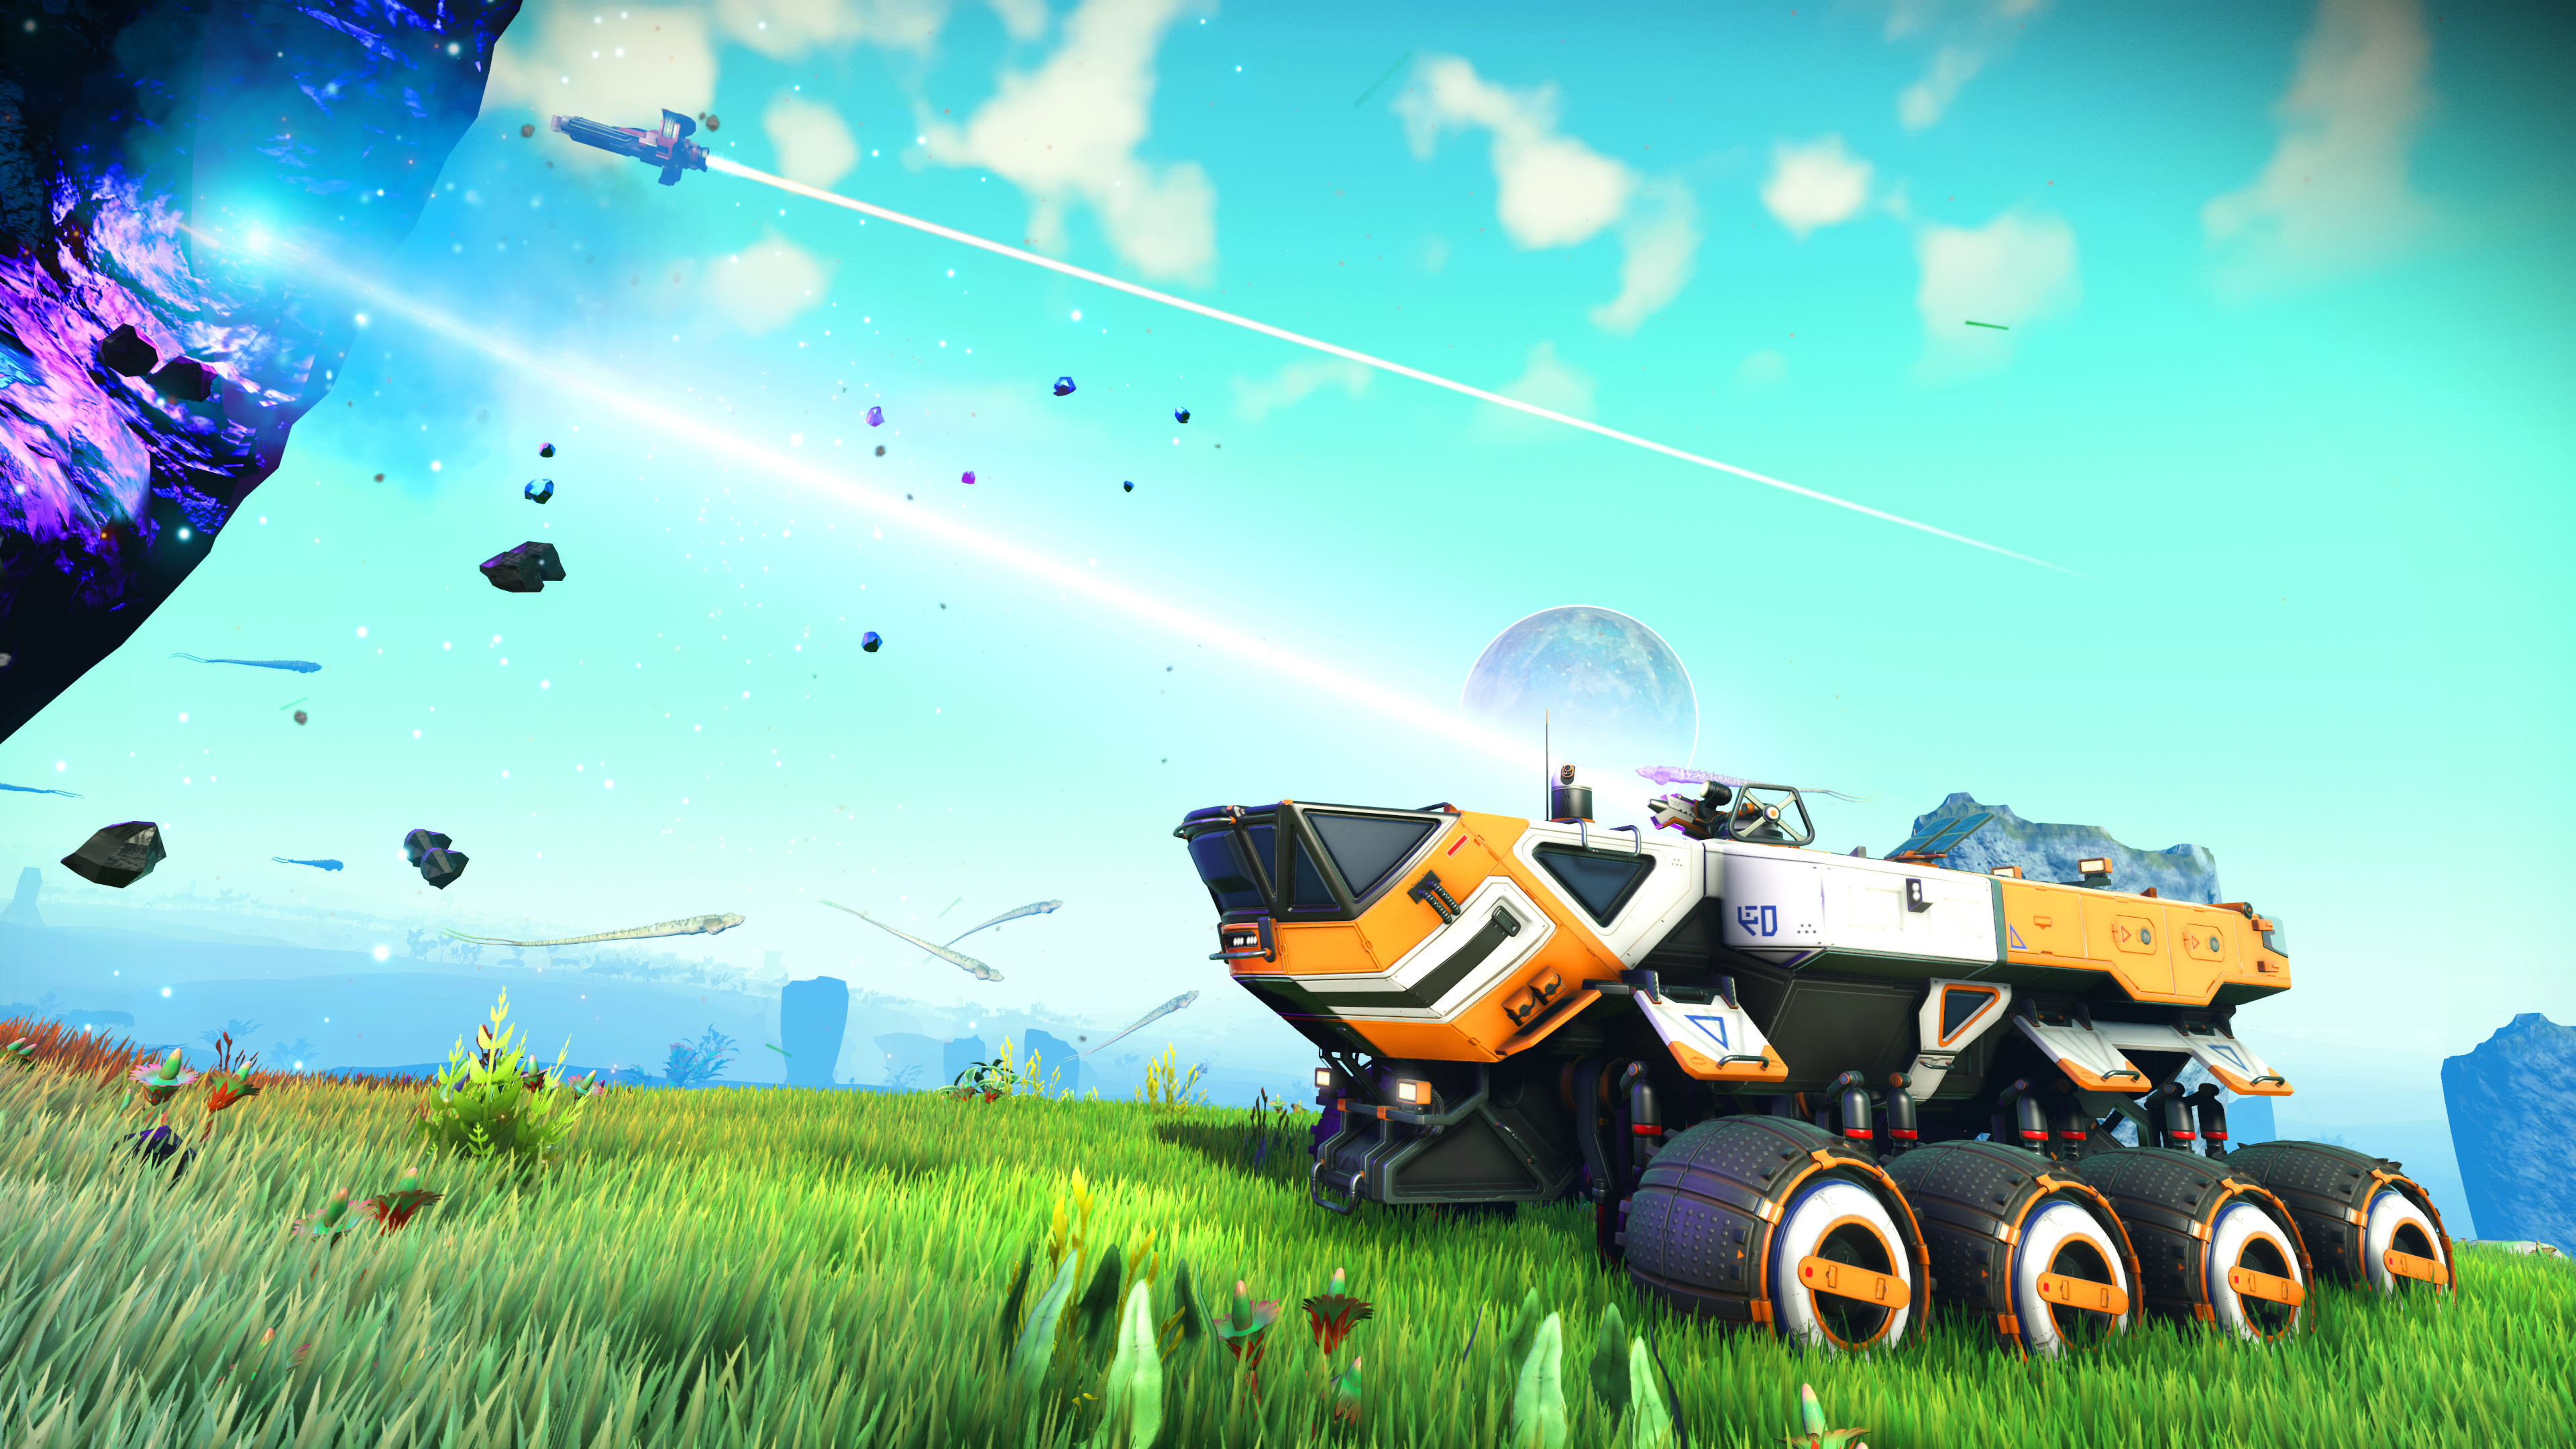 no mans sky original 4k 1543621204 - No Mans Sky Original 4k - no mans sky wallpapers, hd-wallpapers, games wallpapers, 4k-wallpapers